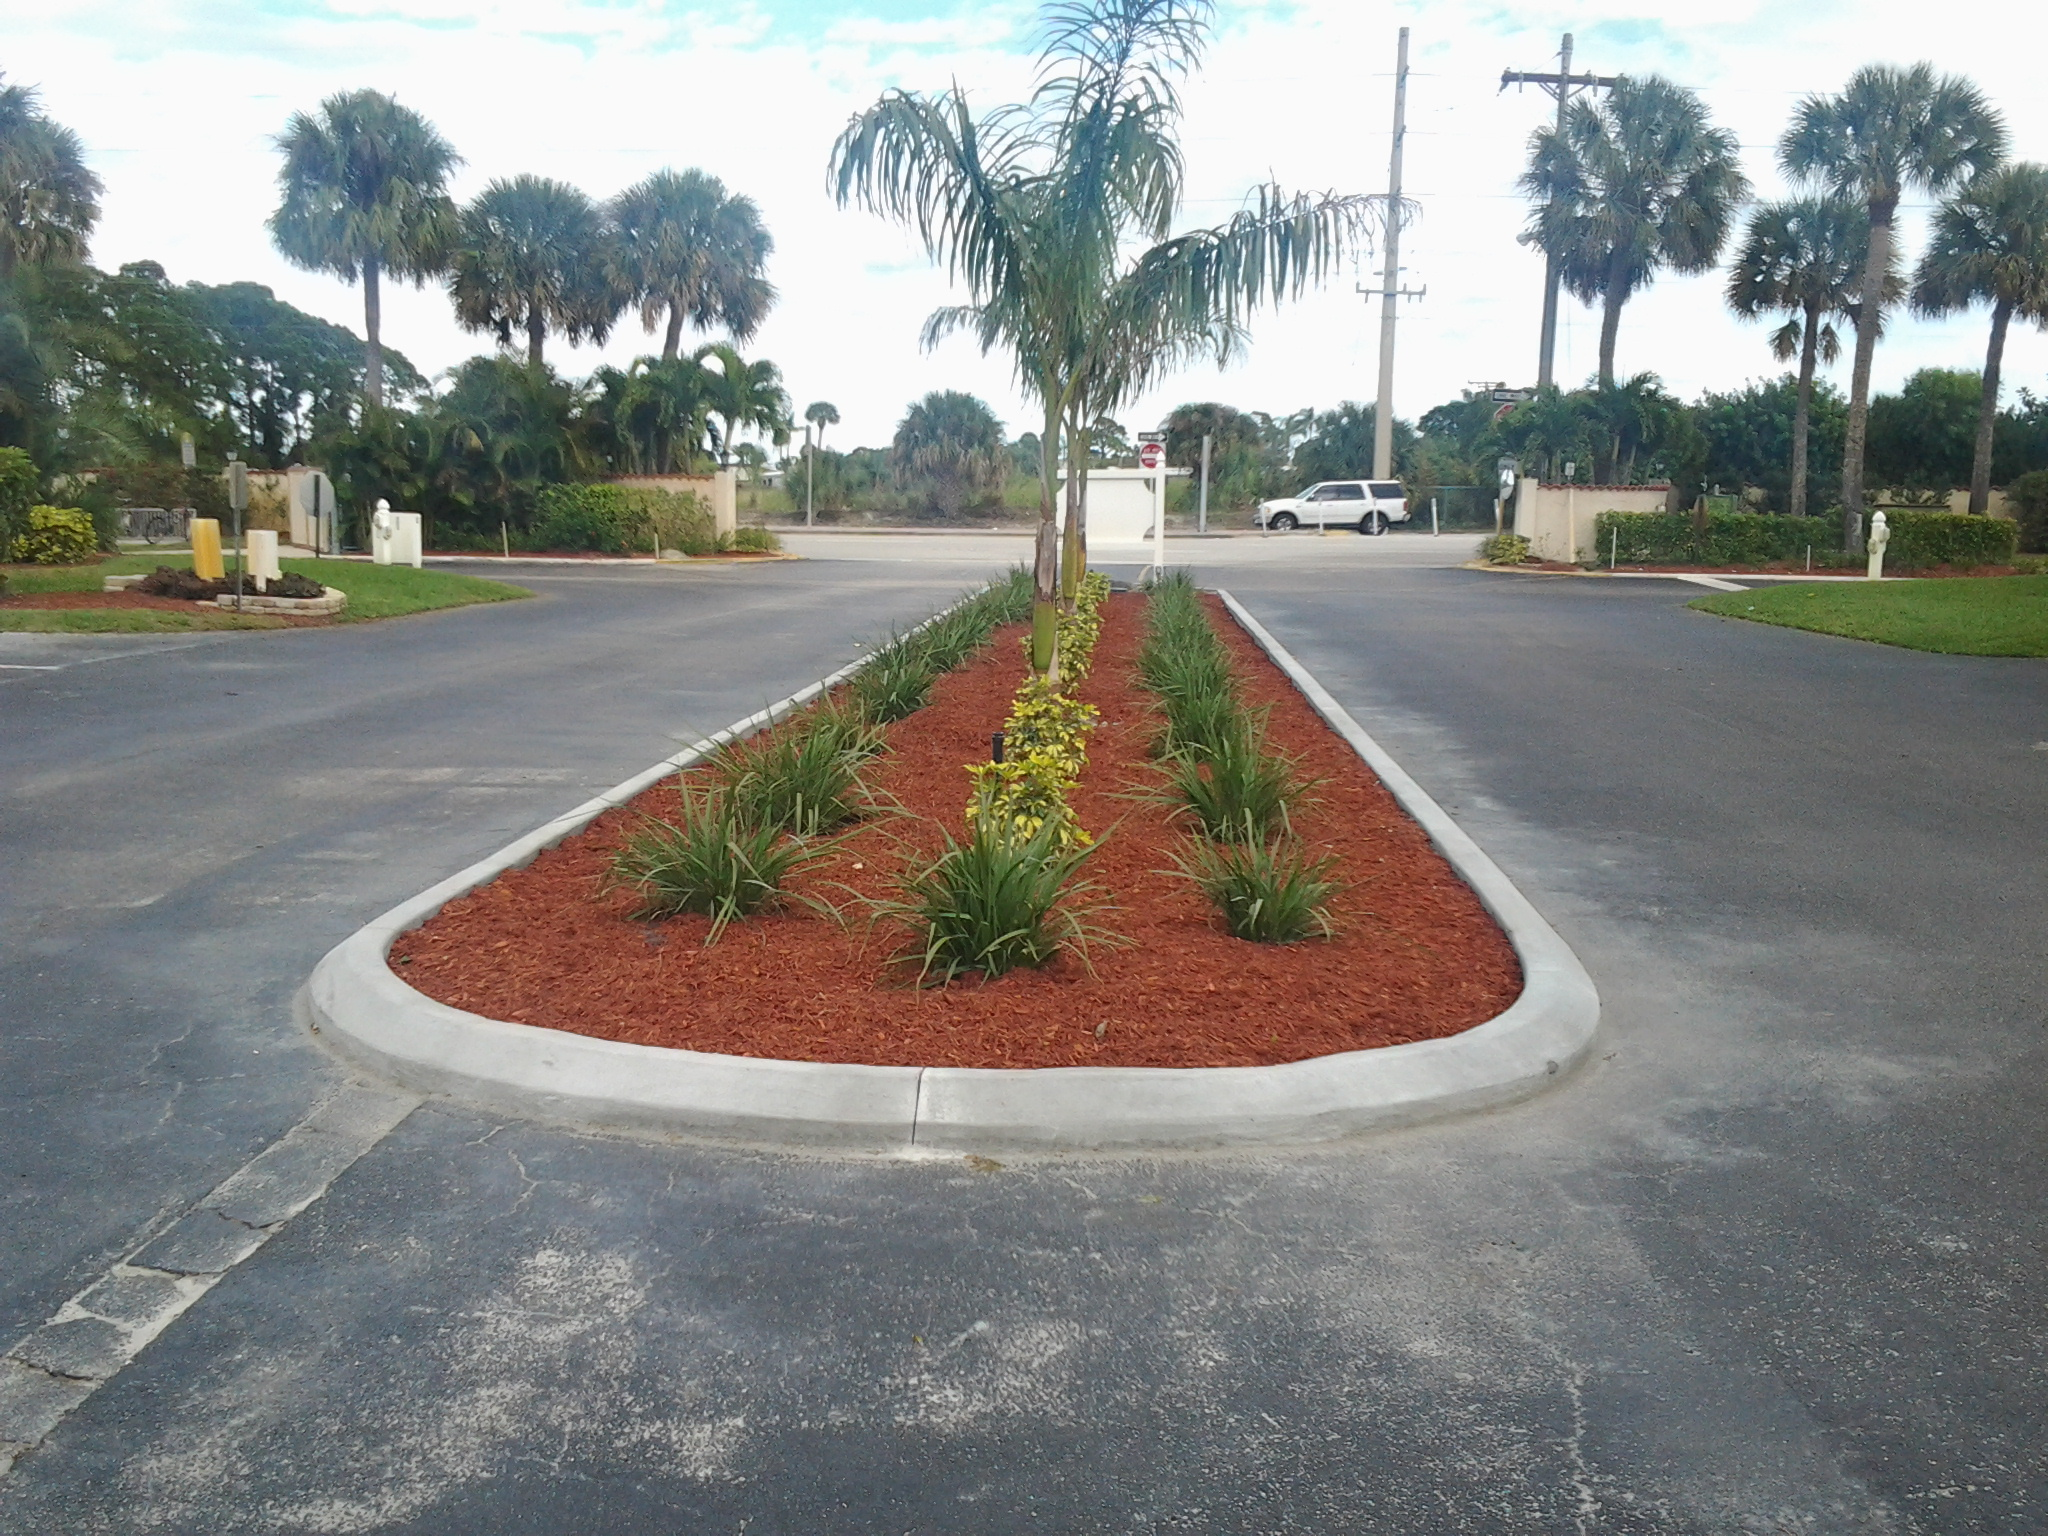 Golf courses, path ways, grass, roadways, decorative, concrete curbing